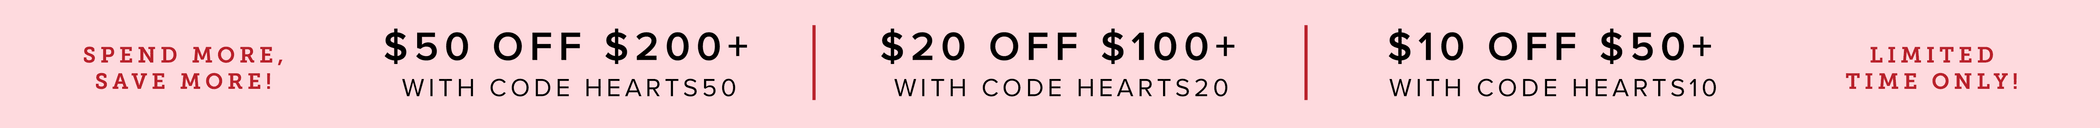 Spend more, save more! $50 off $200 with code HEARTS50, $20 off $100 with code HEARTS20, $10 off $200 with code HEARTS10